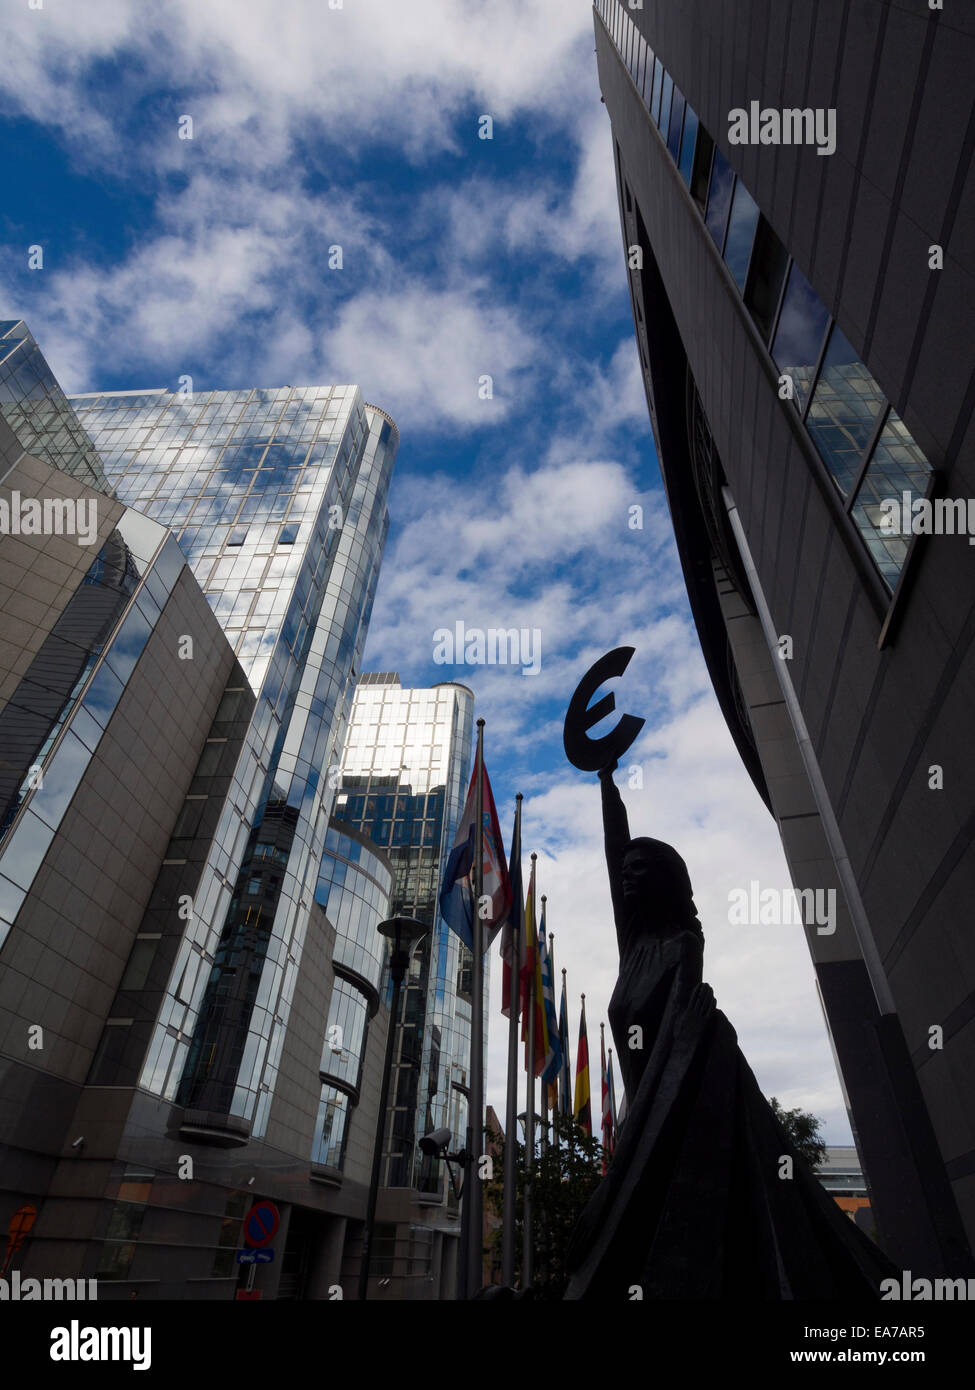 'Europe' statue of a woman holding the Euro symbol next to the European Union Parliament building in Brussels, - Stock Image